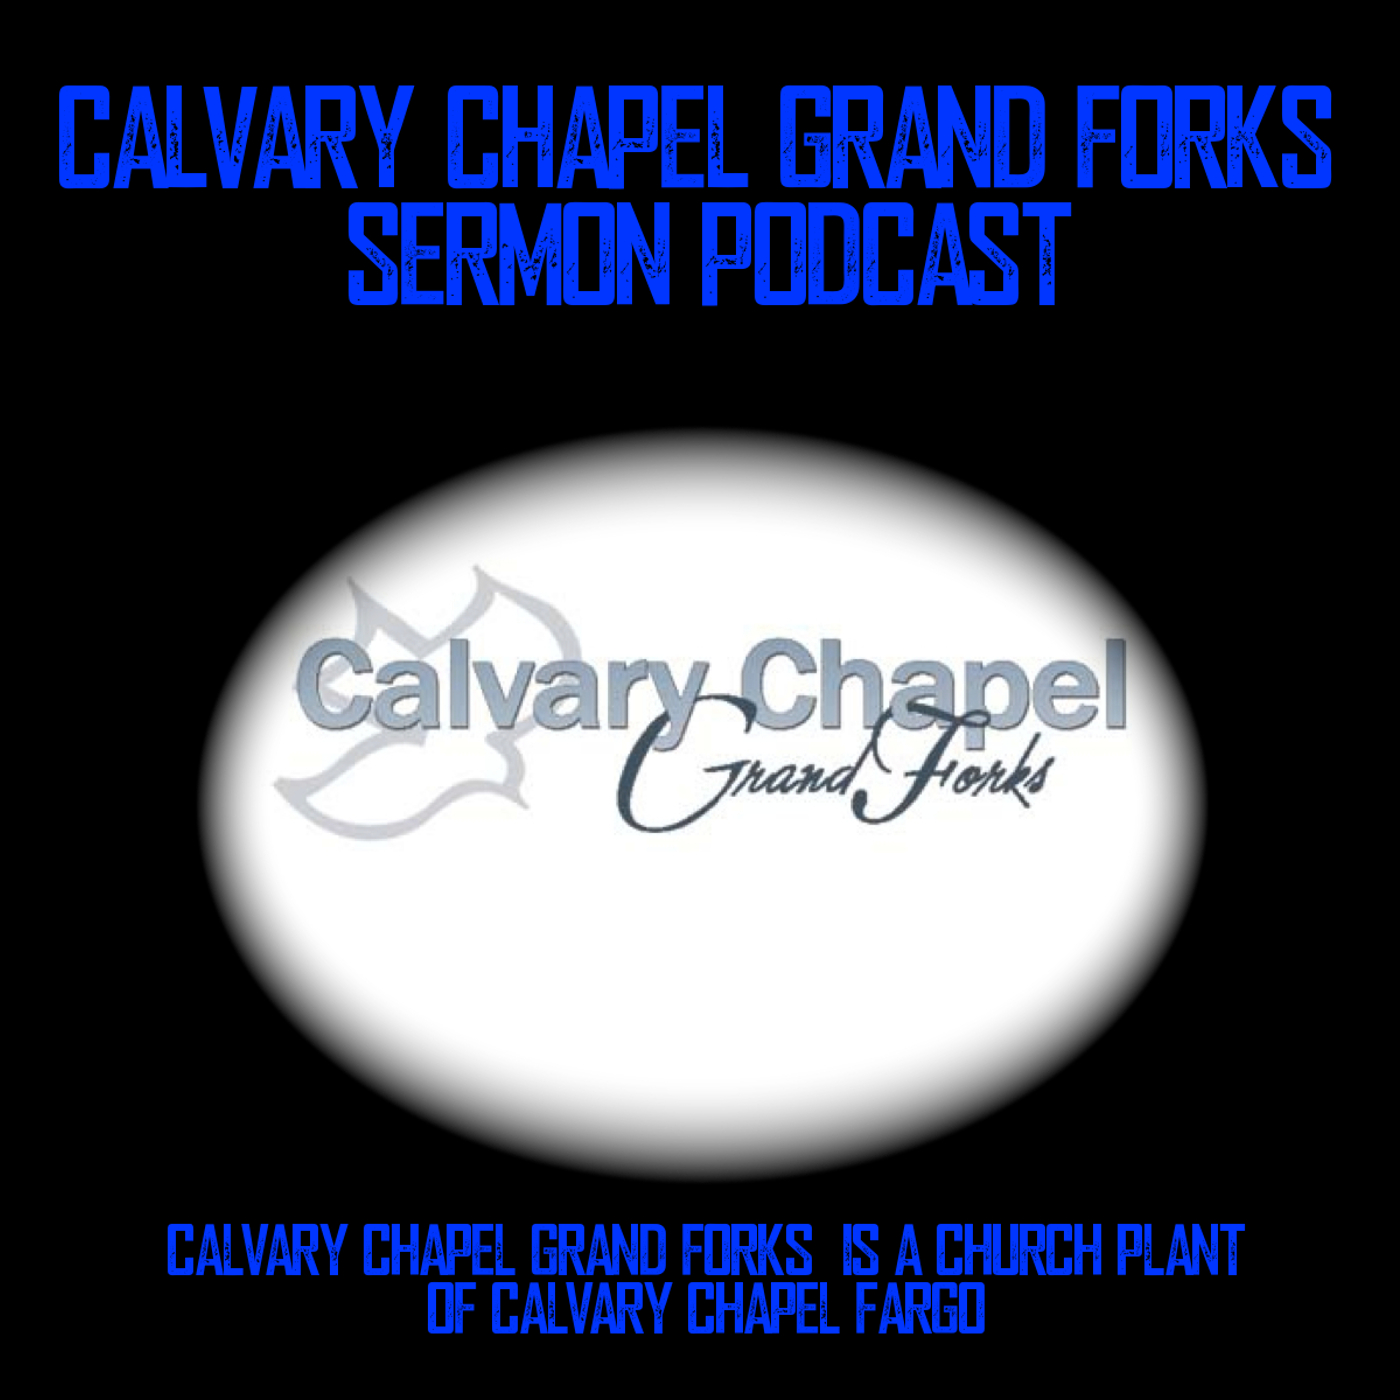 Calvary Chapel Grand Forks Podcast